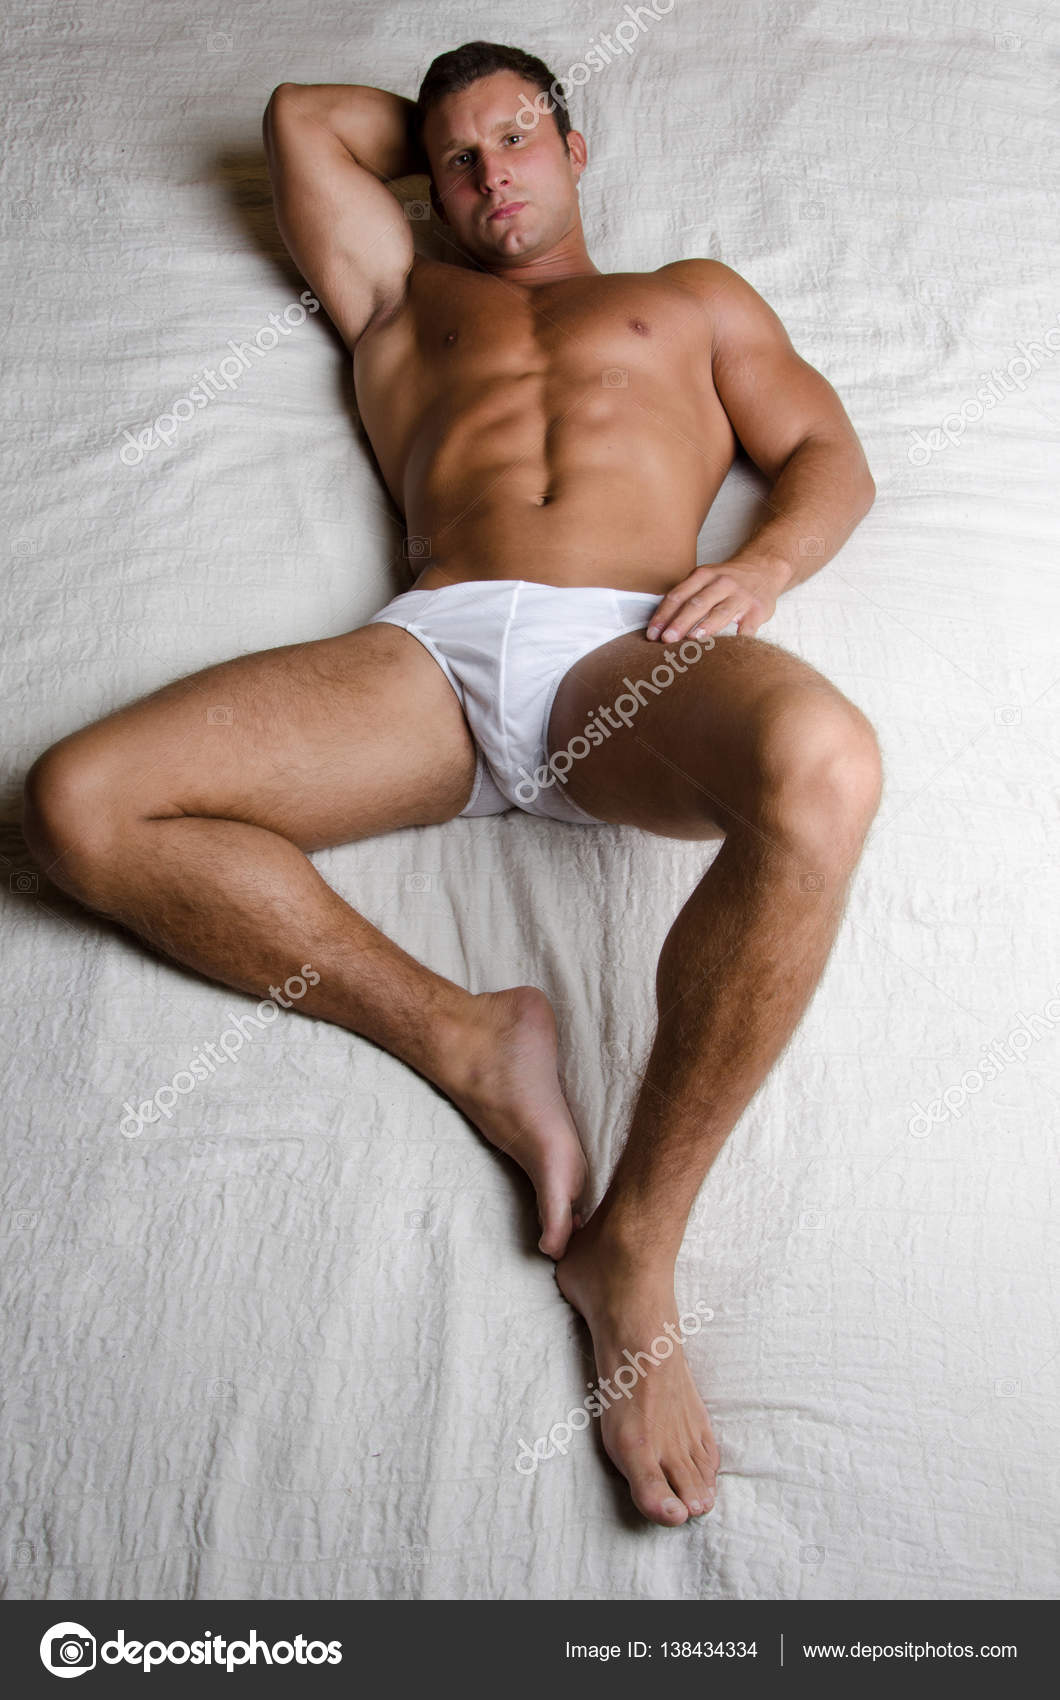 Sexy naked guy in bed